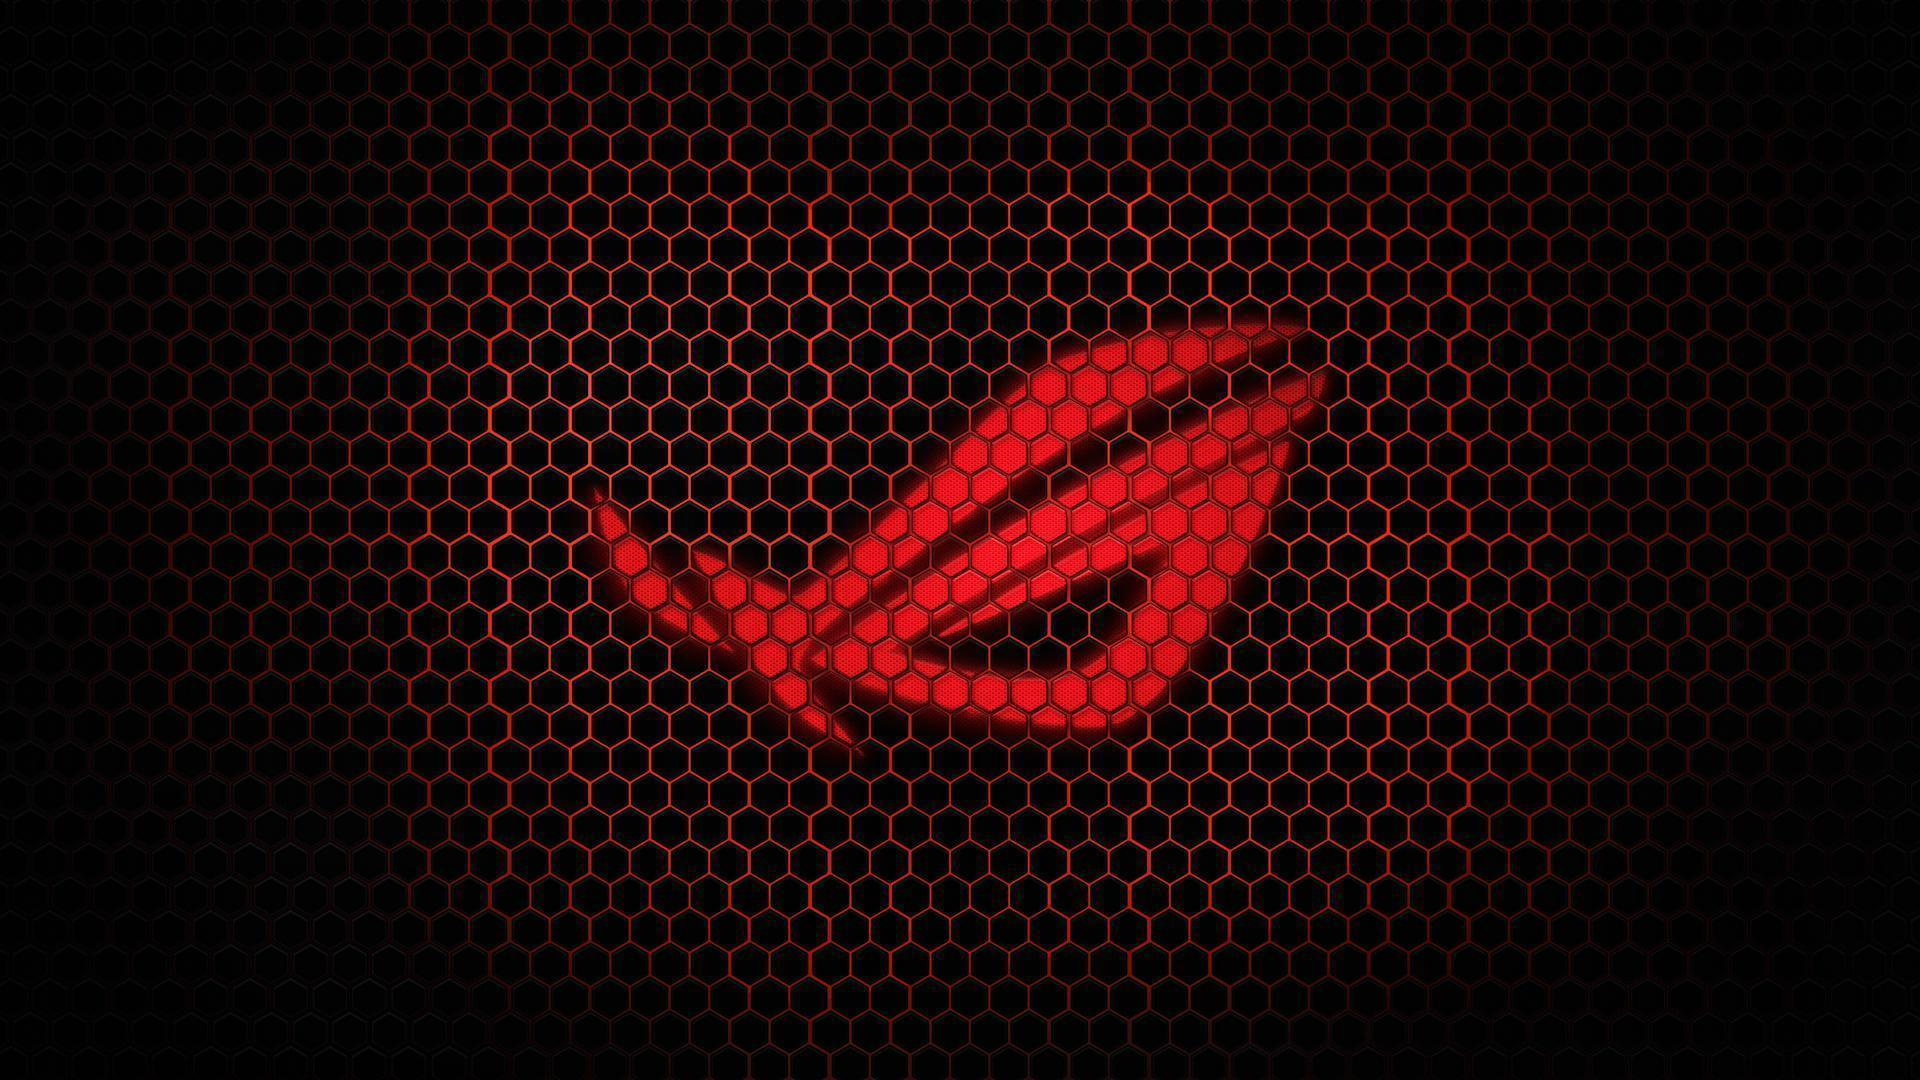 nvidia wallpaper 1080p red - photo #13